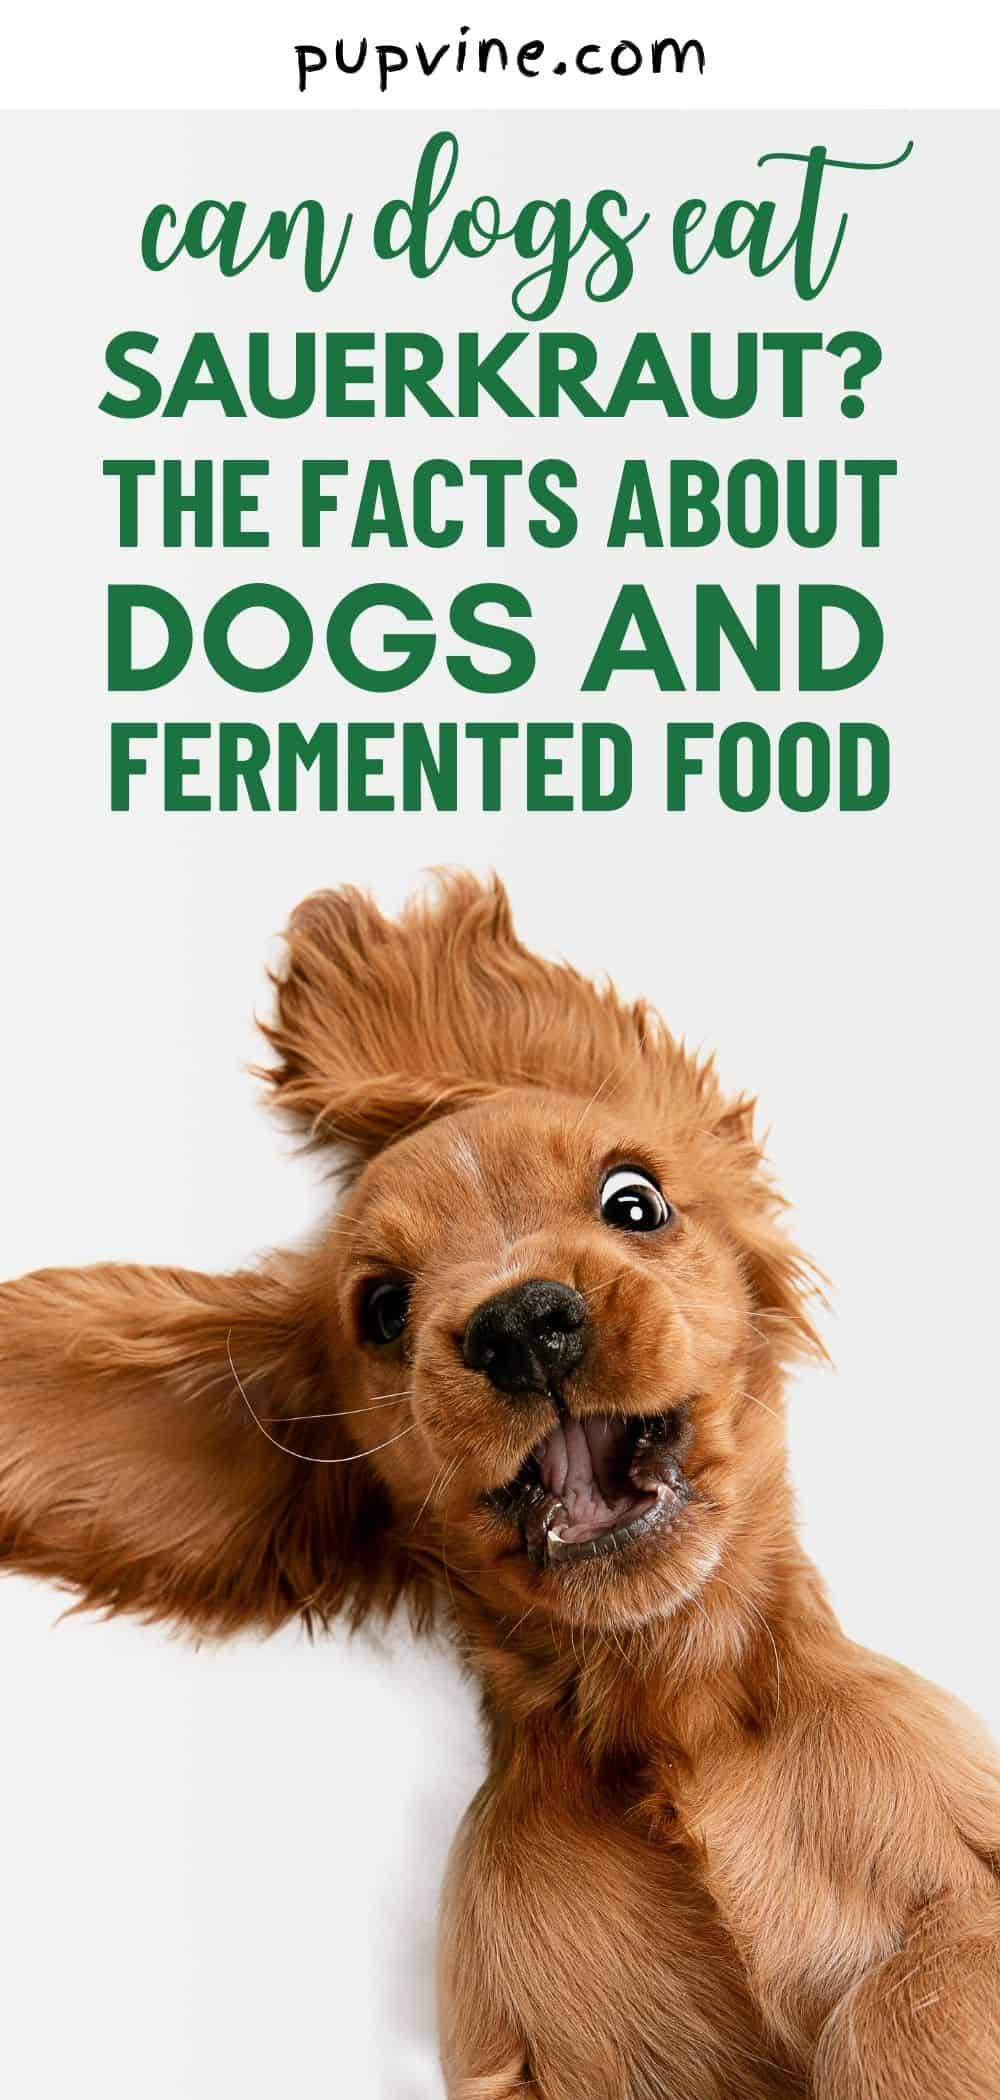 Can Dogs Eat Sauerkraut? The Facts About Dogs And Fermented Food